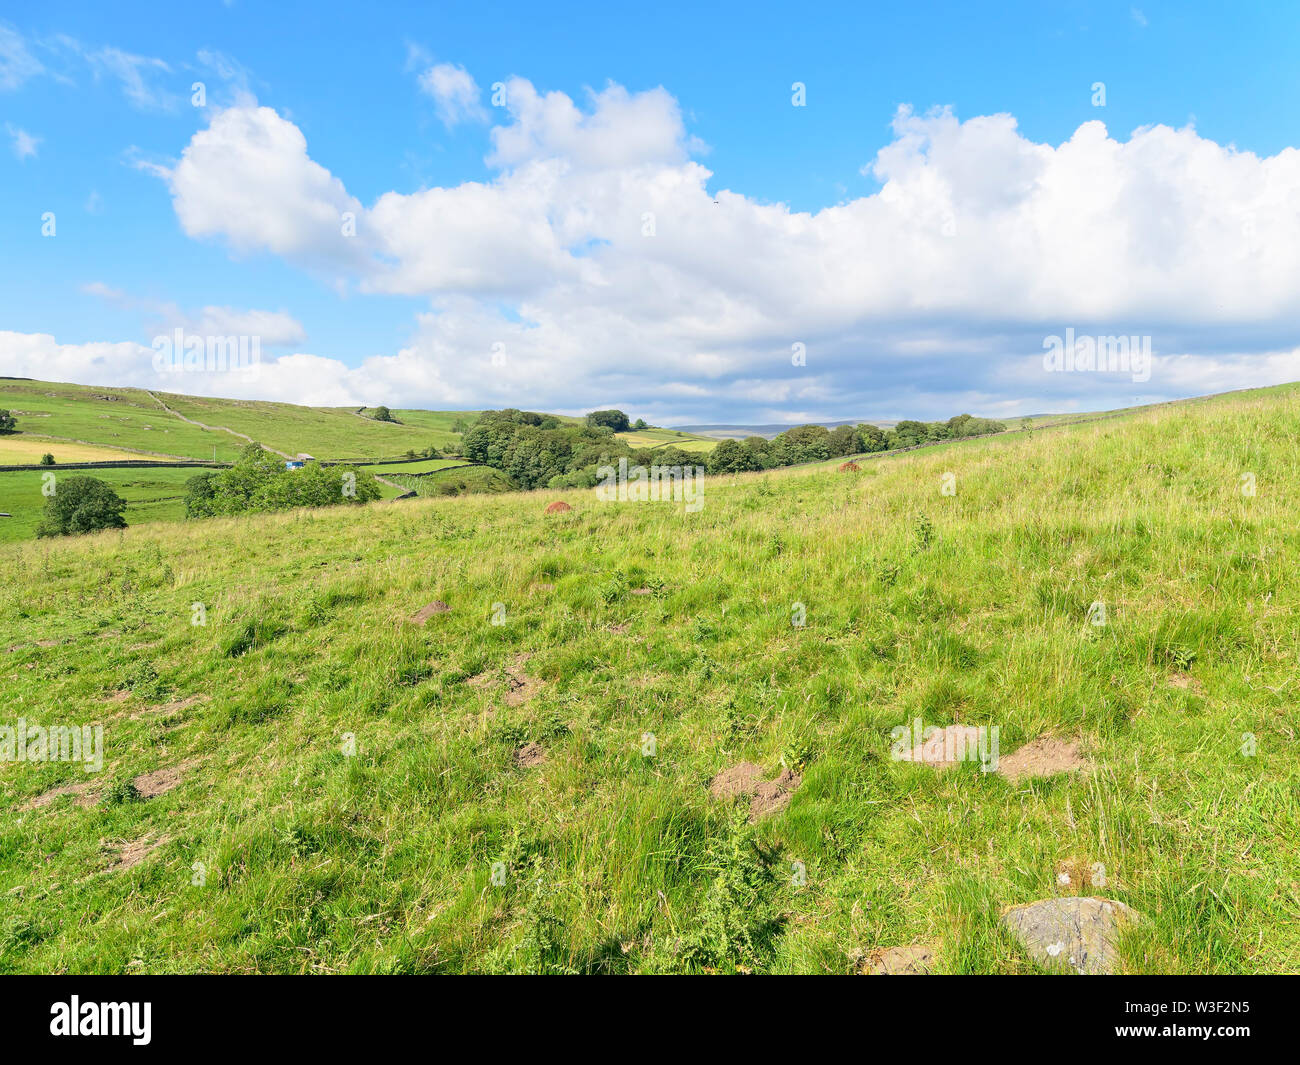 Looking out over the hills and valleys of the Yorkshire Dales near Stainforth. - Stock Image